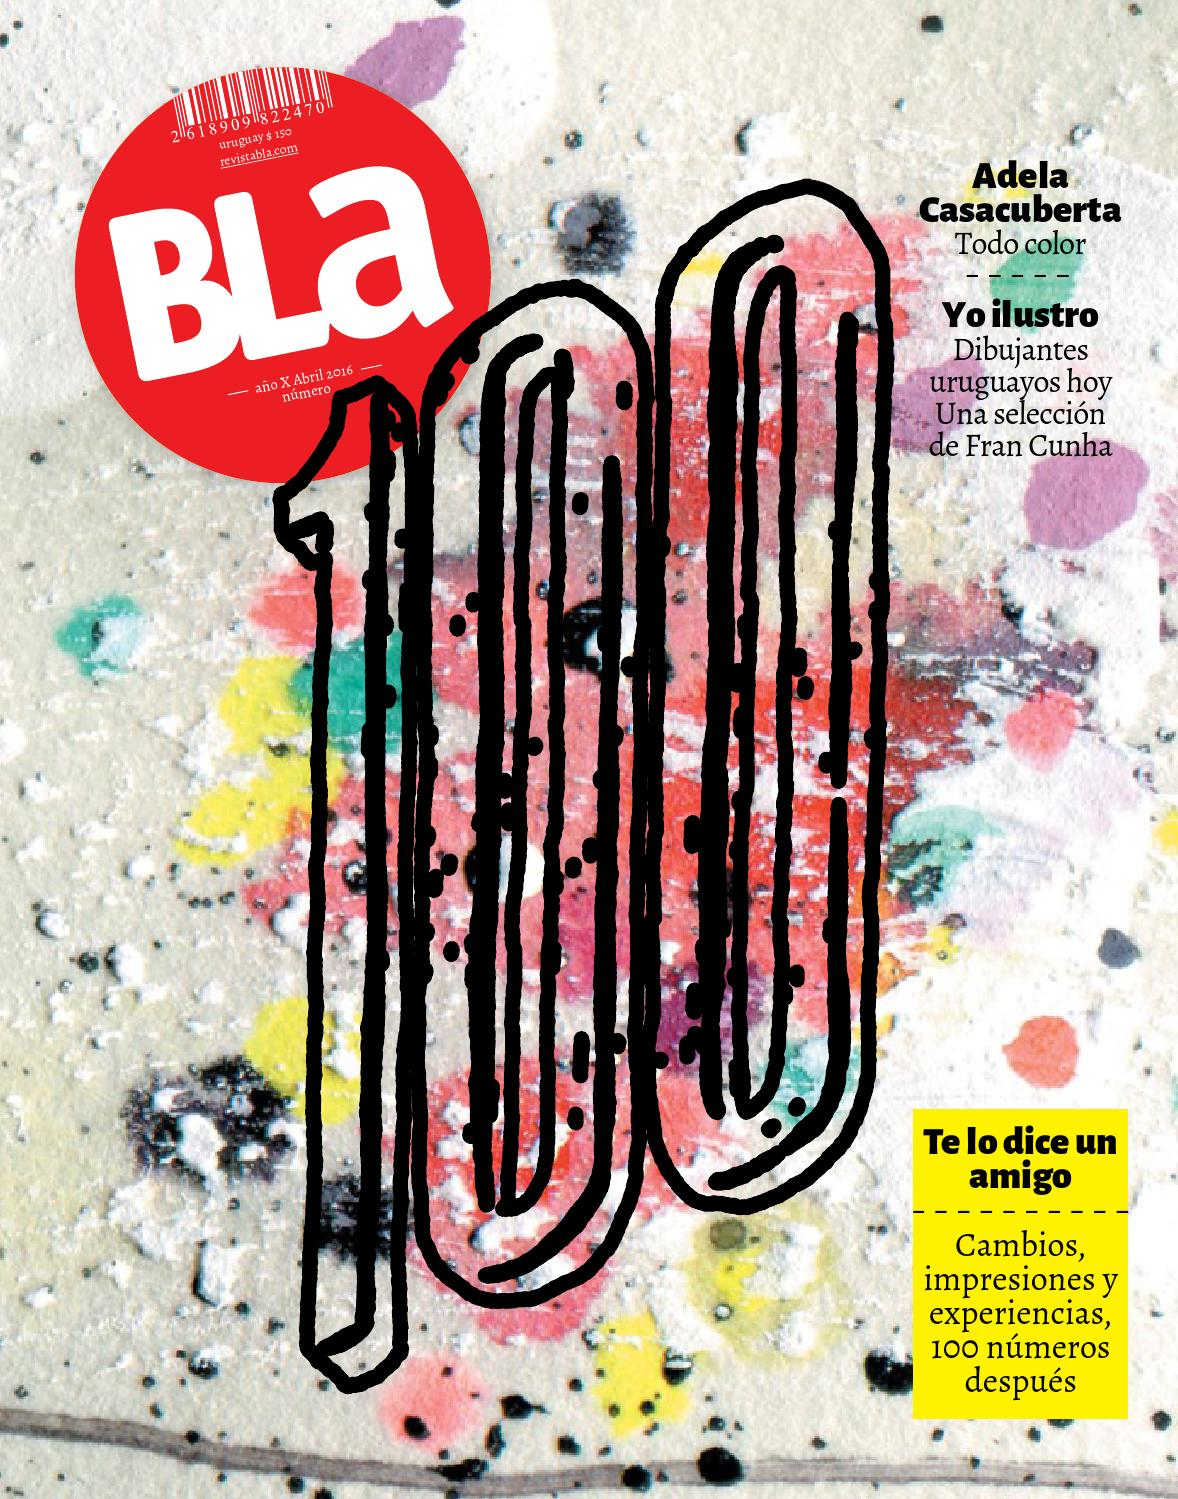 411b10f64ecde2 Bla100 by Editorial BLa - issuu